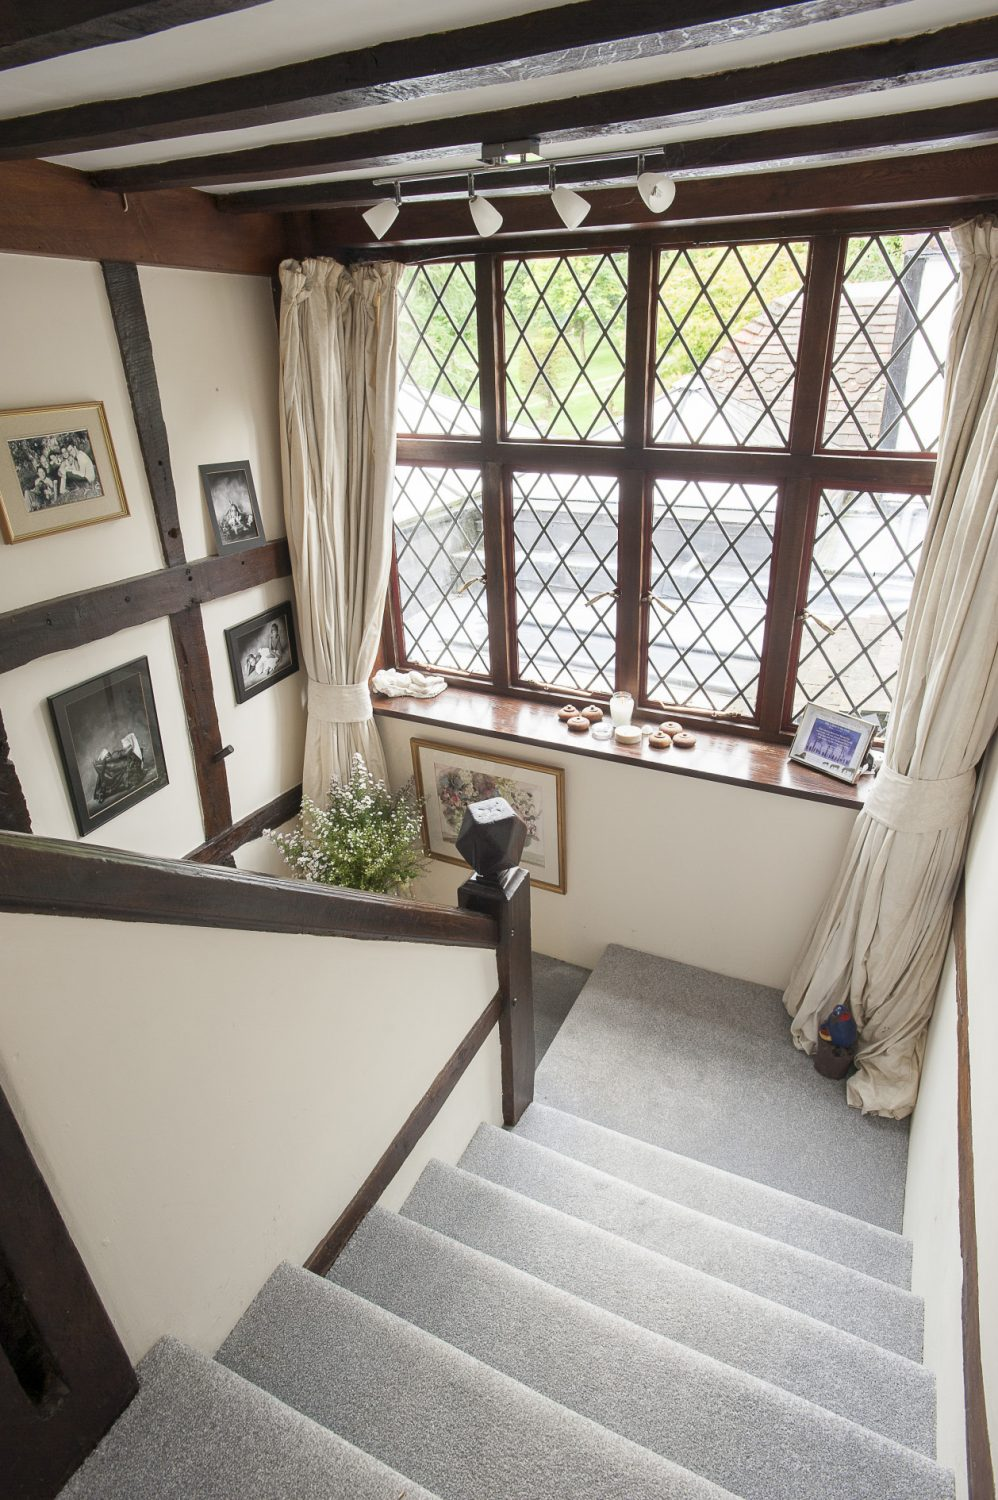 From the sitting room, stairs lead up to Pennybridge's two further floors